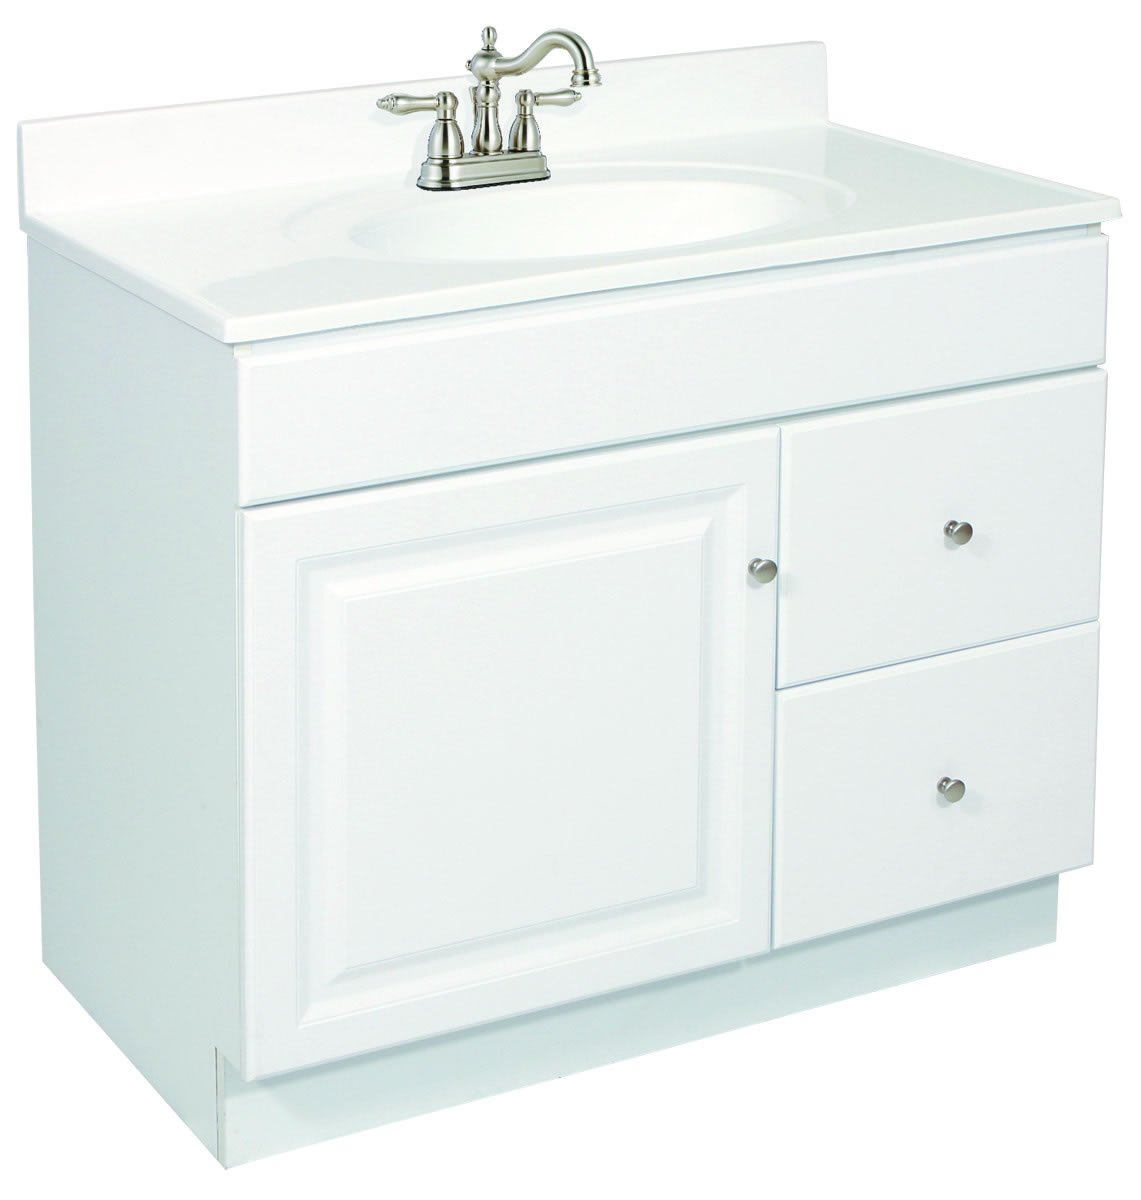 Design House 545053 Wyndham White Semi Gloss Vanity Cabinet With 1 Door And 2 Drawers 24 Inches Wide By 31 5 Inches Tall By 21 Inches Deep Hand Tool Sets